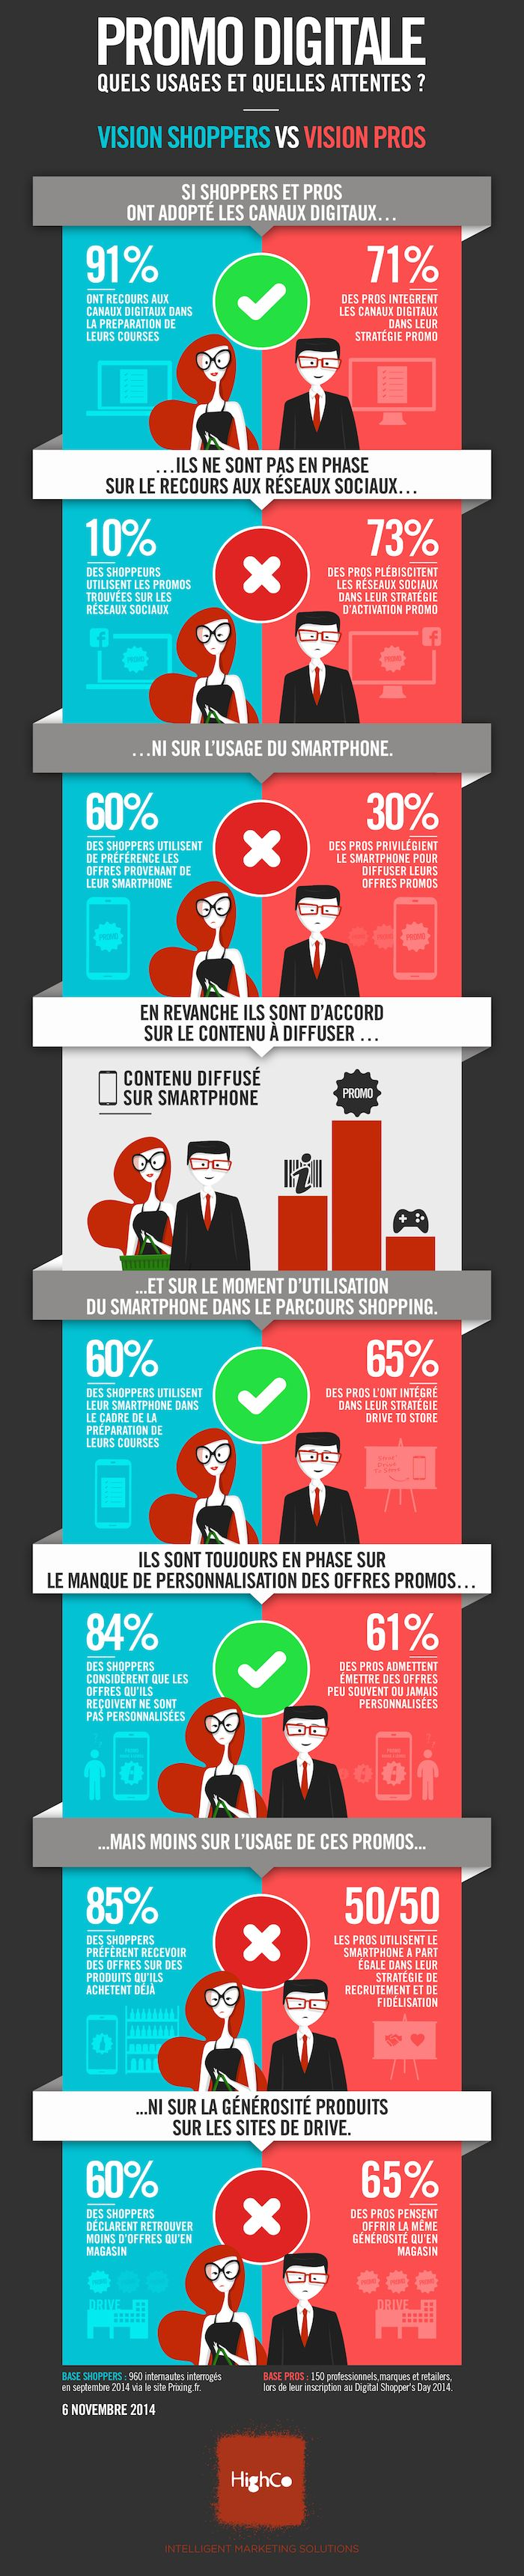 Infographie sur la promotion digitale : shoppers vs pros